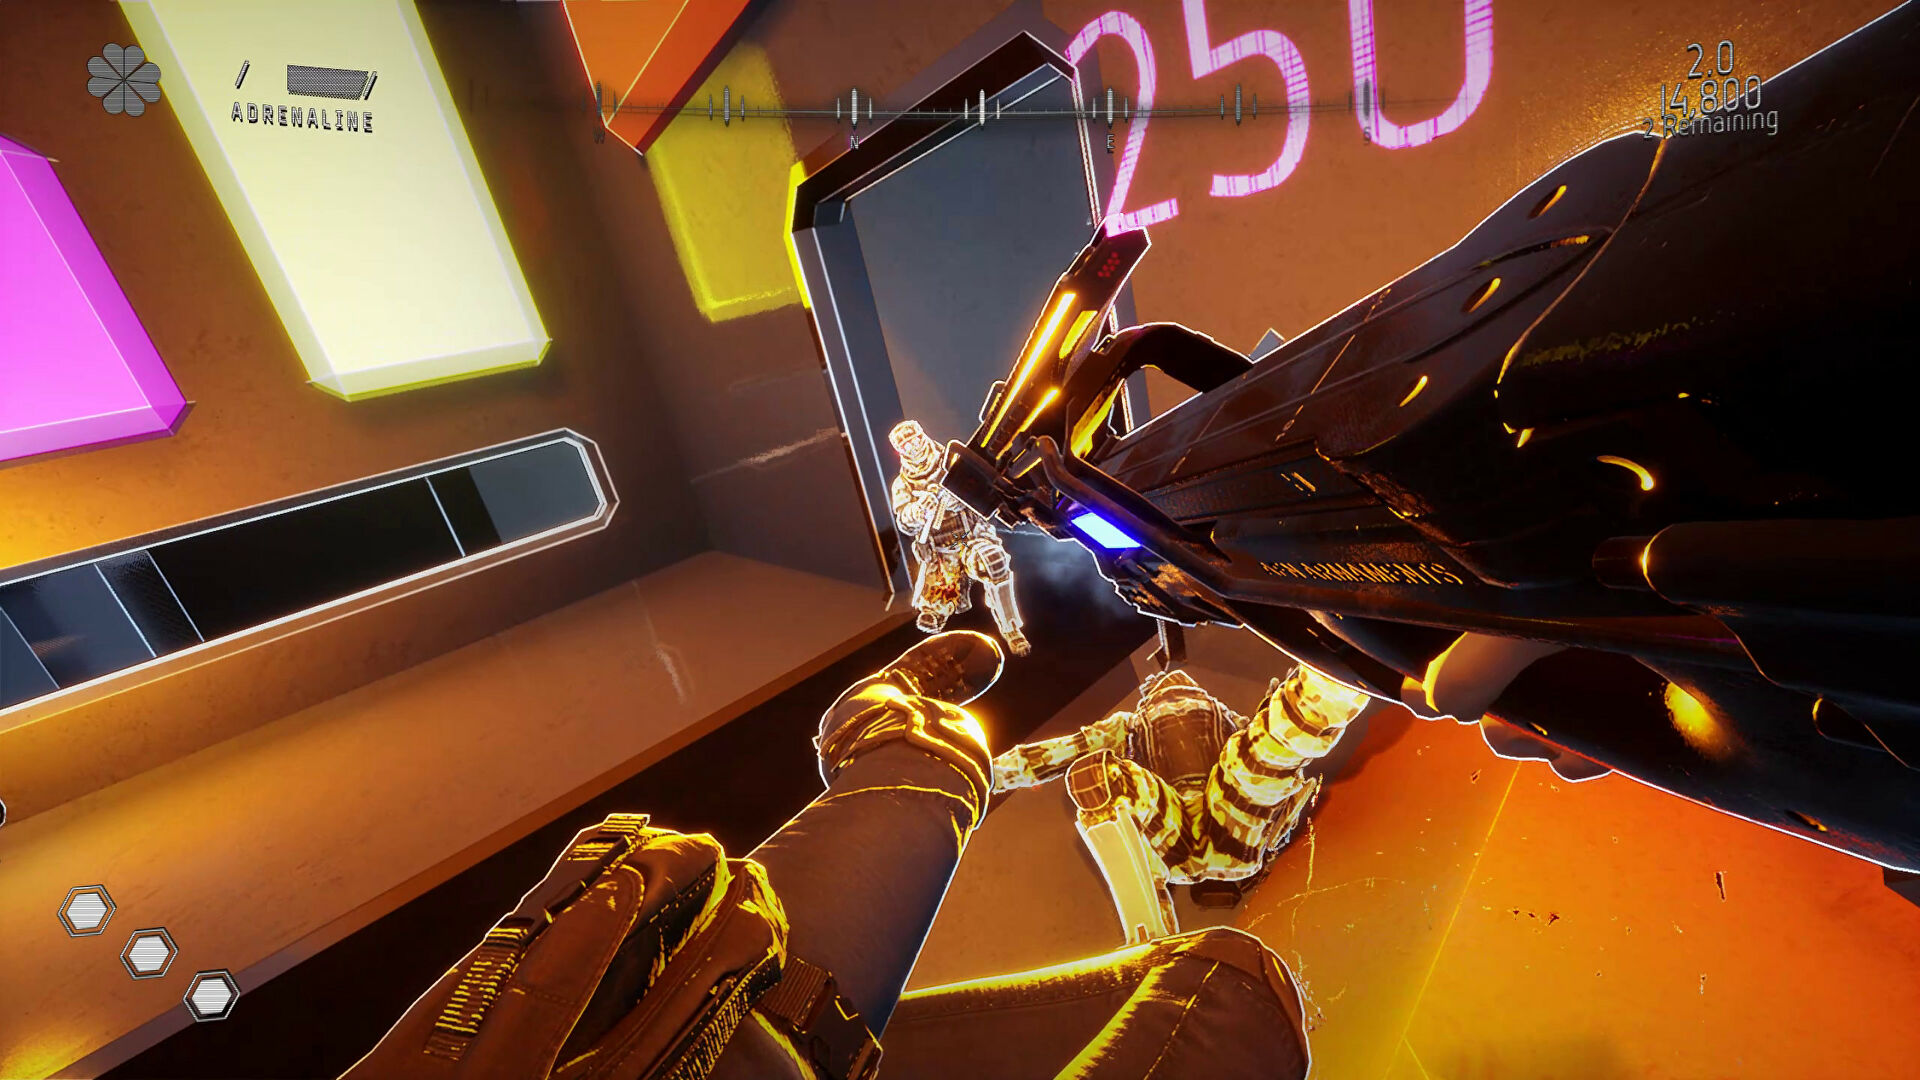 Stylish FPS Severed Steel shows off sliding, stunting, and sharpshooting